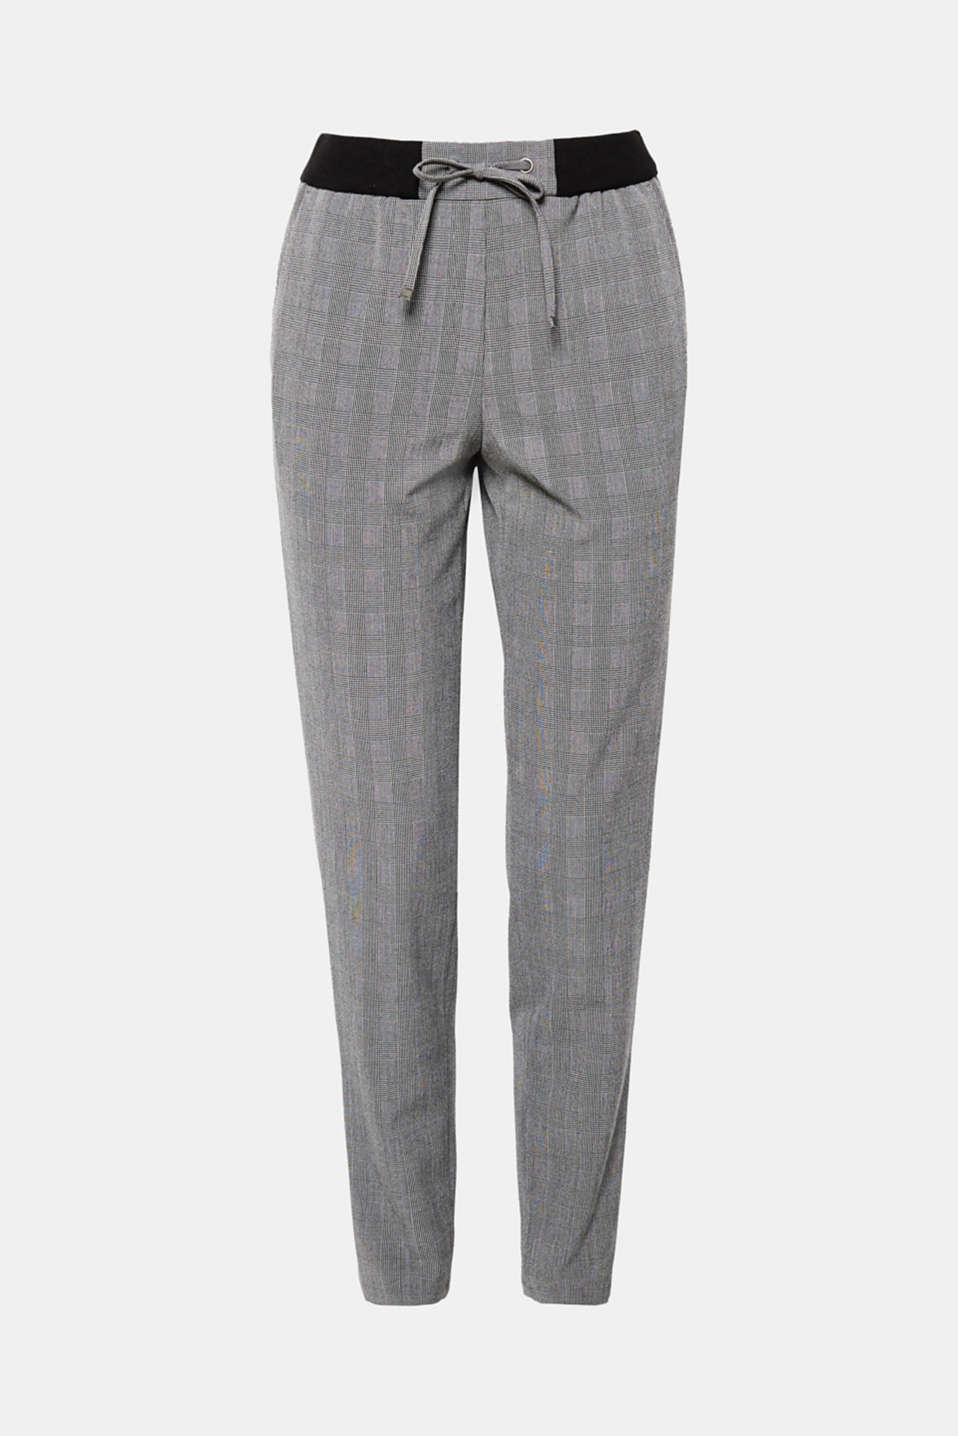 These tracksuit bottoms with a fine Prince of Wales check pattern and an elasticated waistband combine casual comfort with timeless, classic elements.